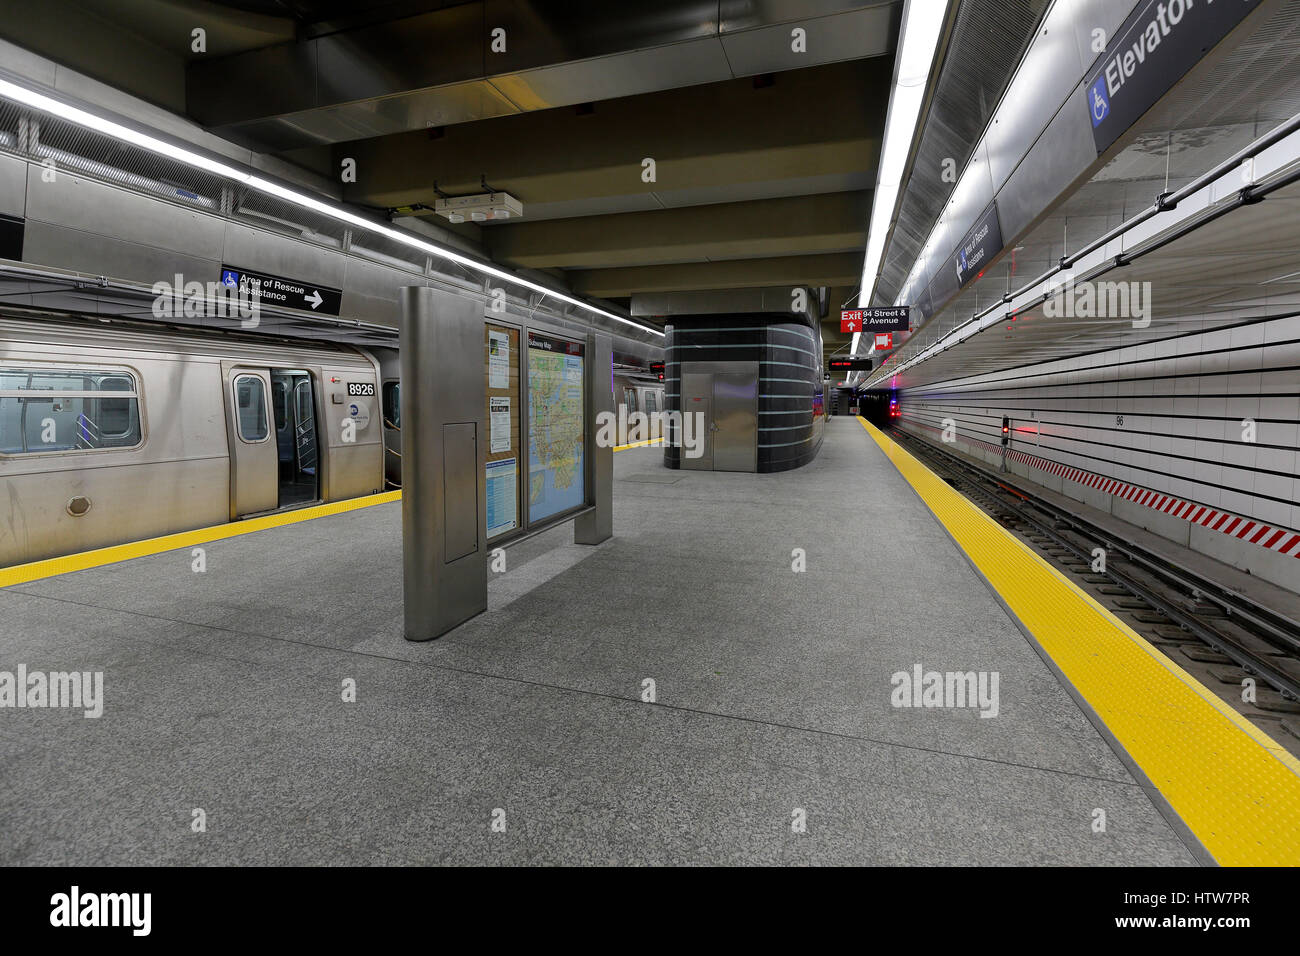 station interior of the Second Avenue Subway in New York City - Stock Image